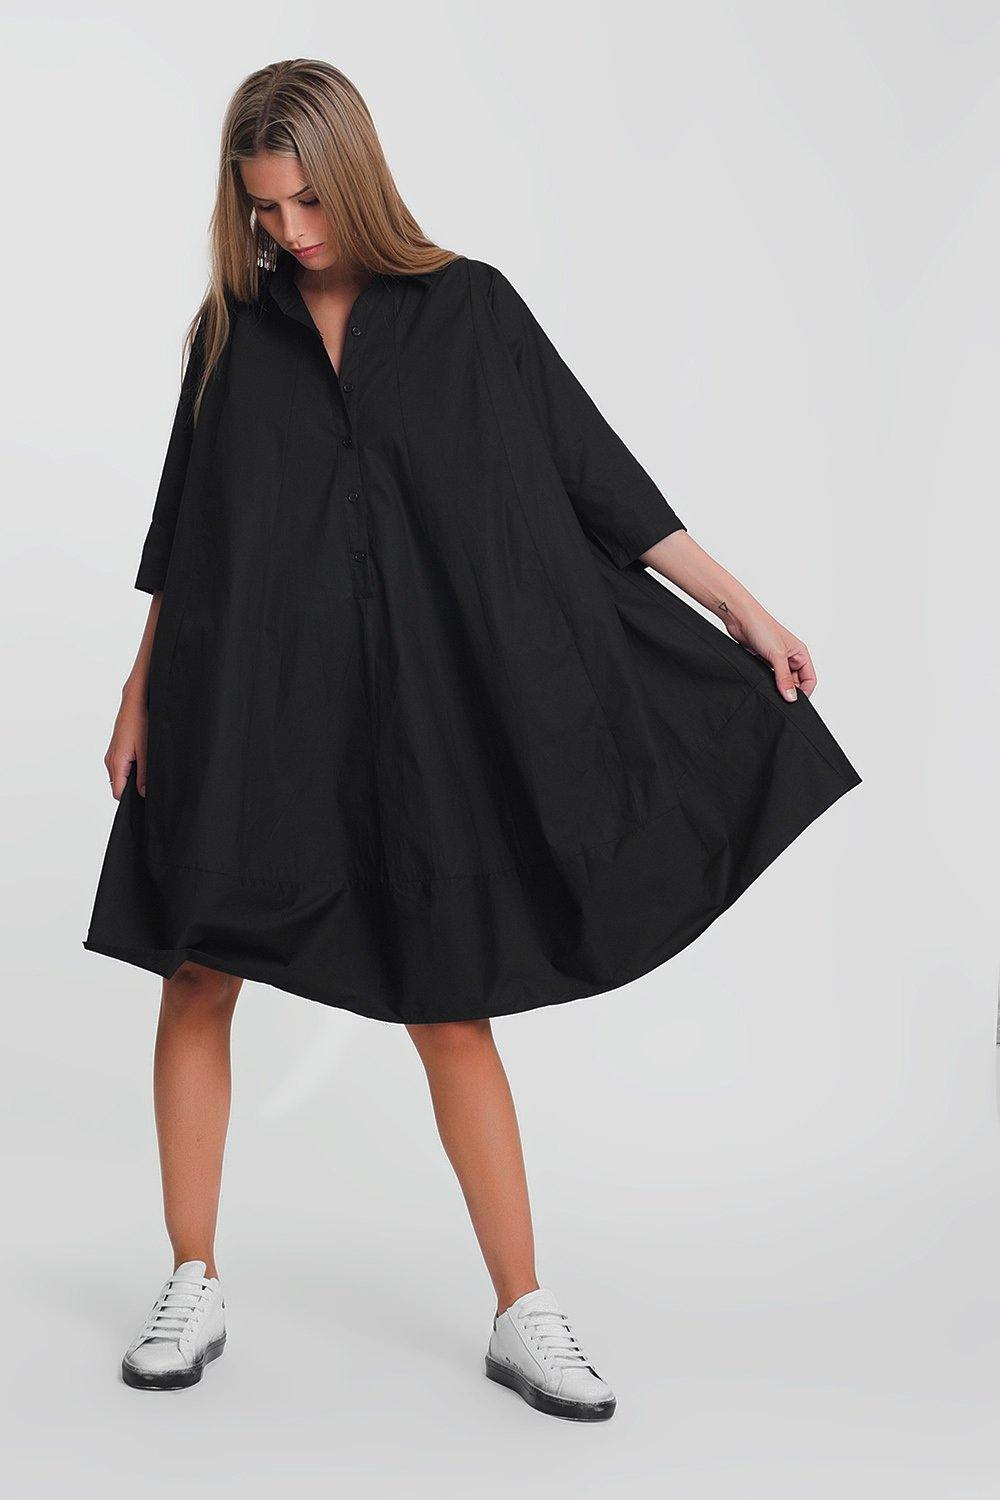 Q2 Cotton poplin oversized smock dress in black